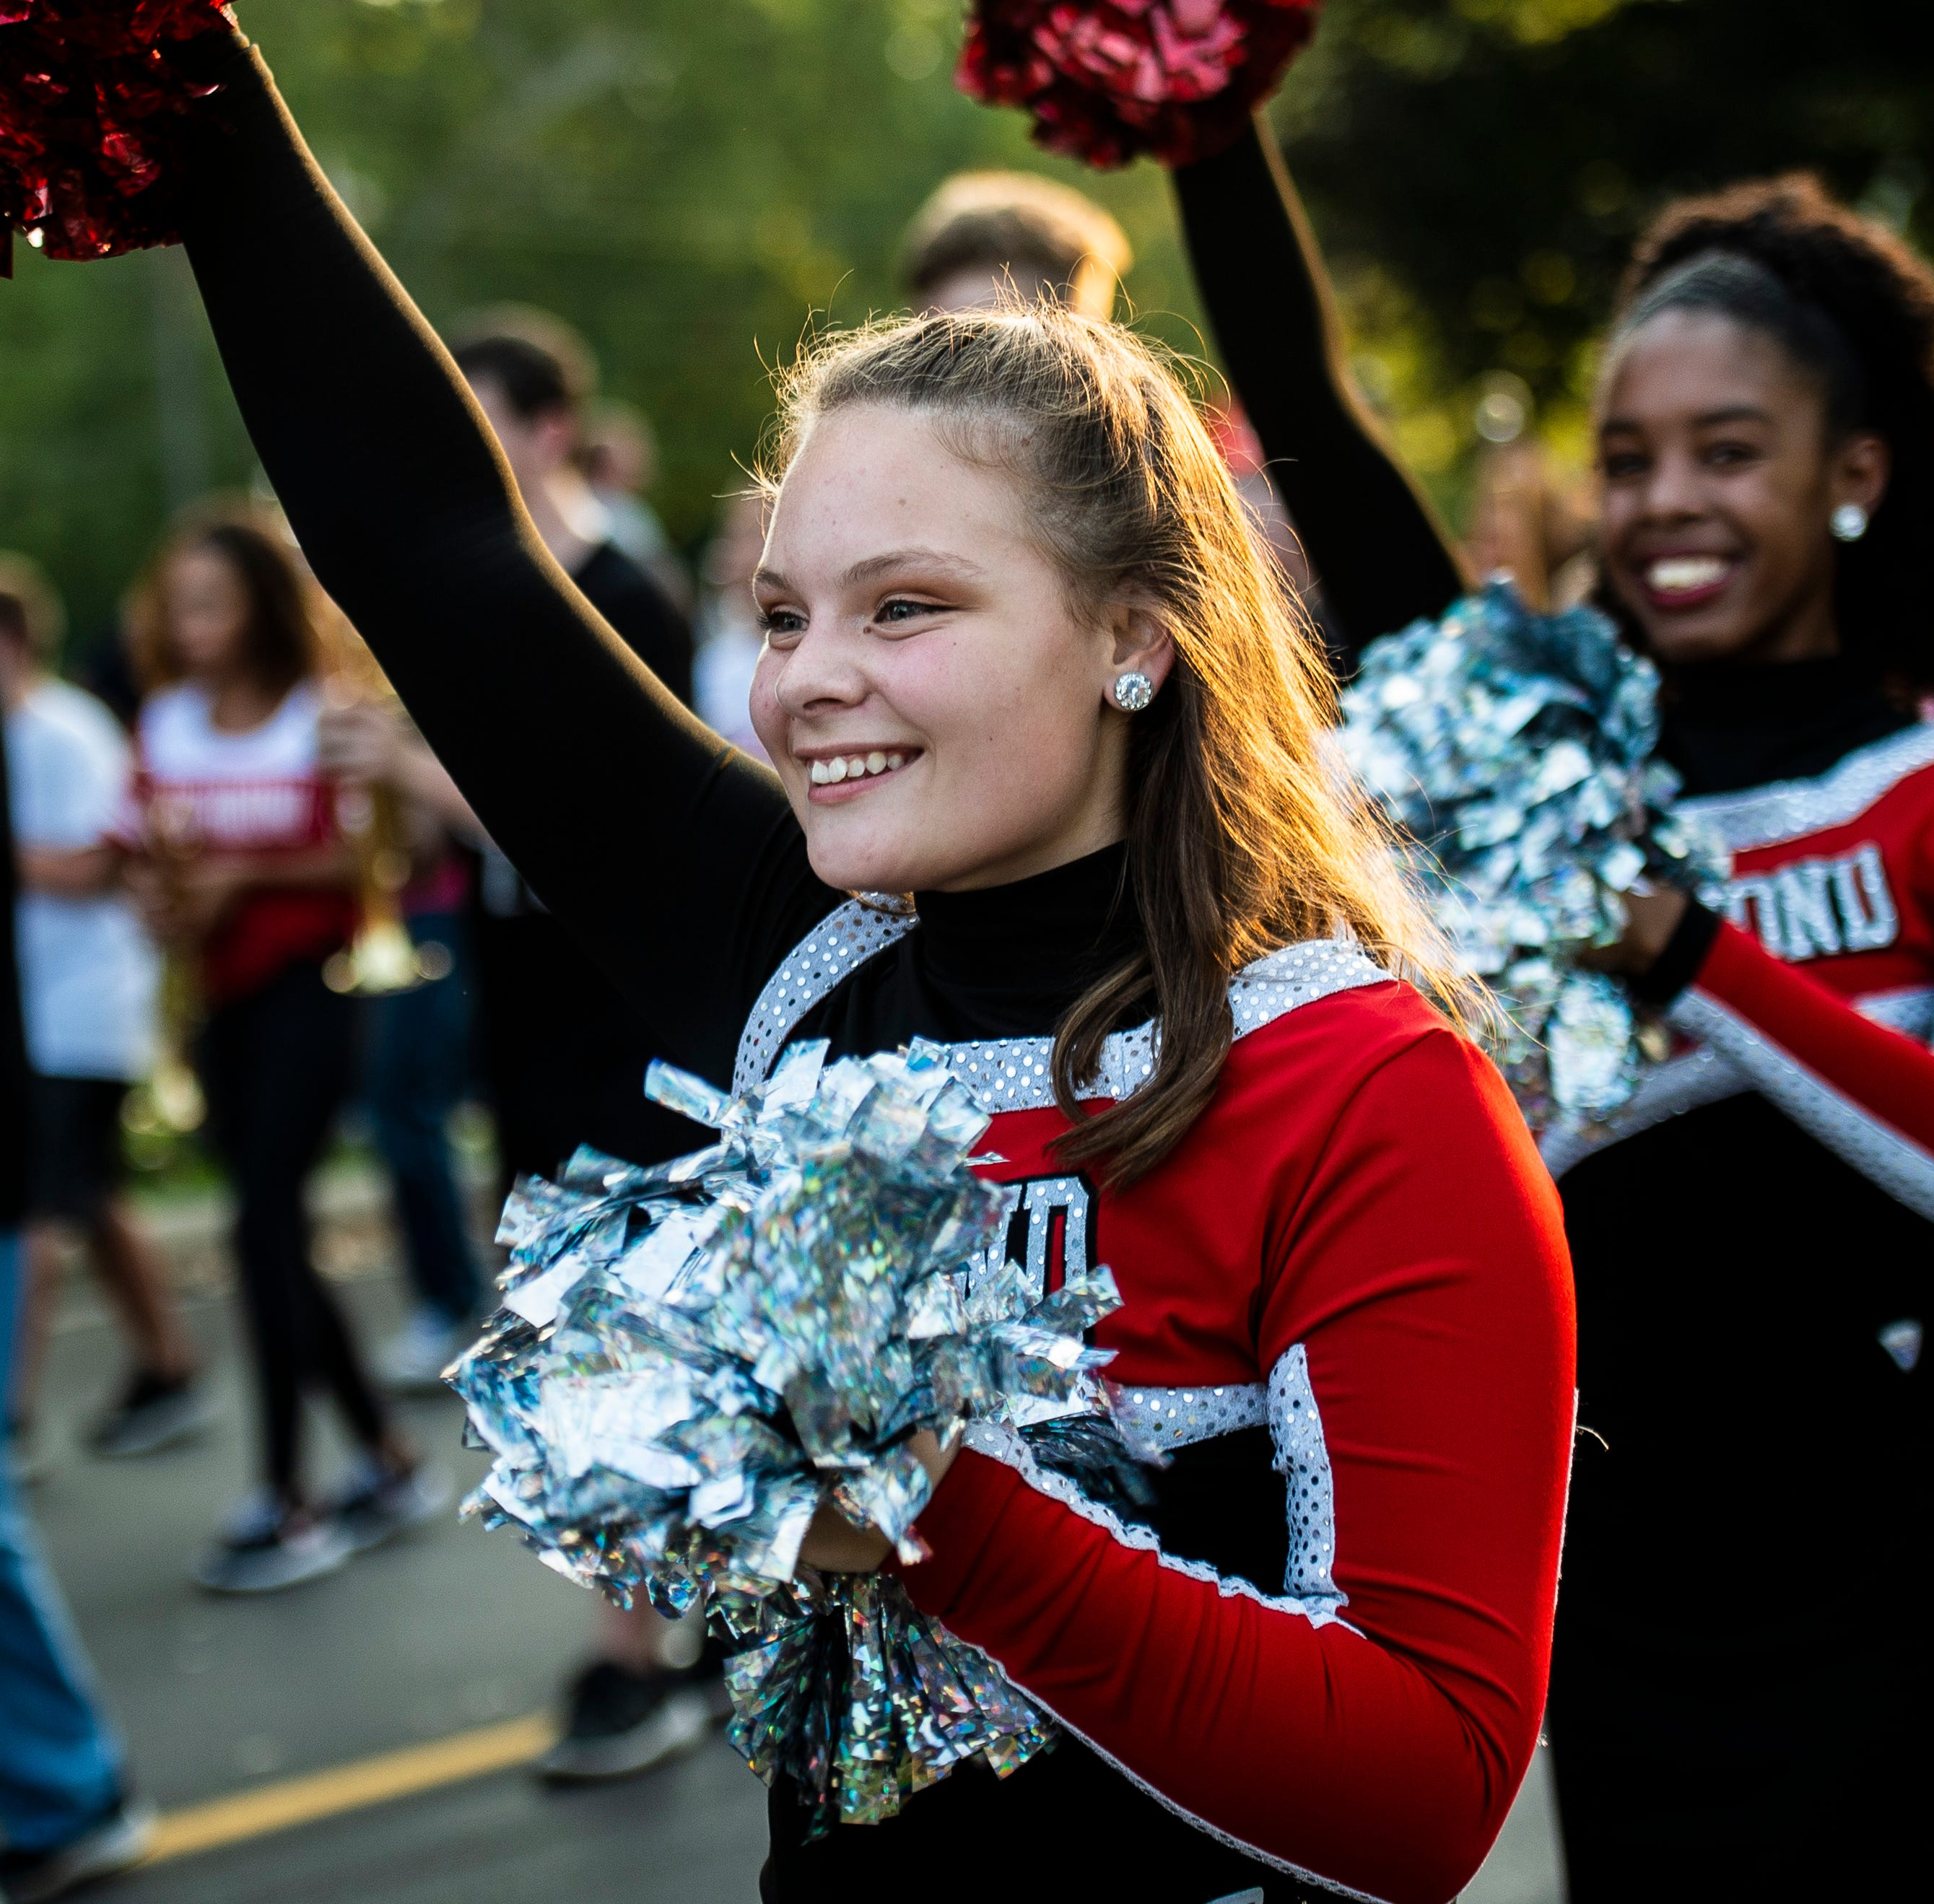 PHOTOS: Homecoming parade celebrates Richmond High School, community